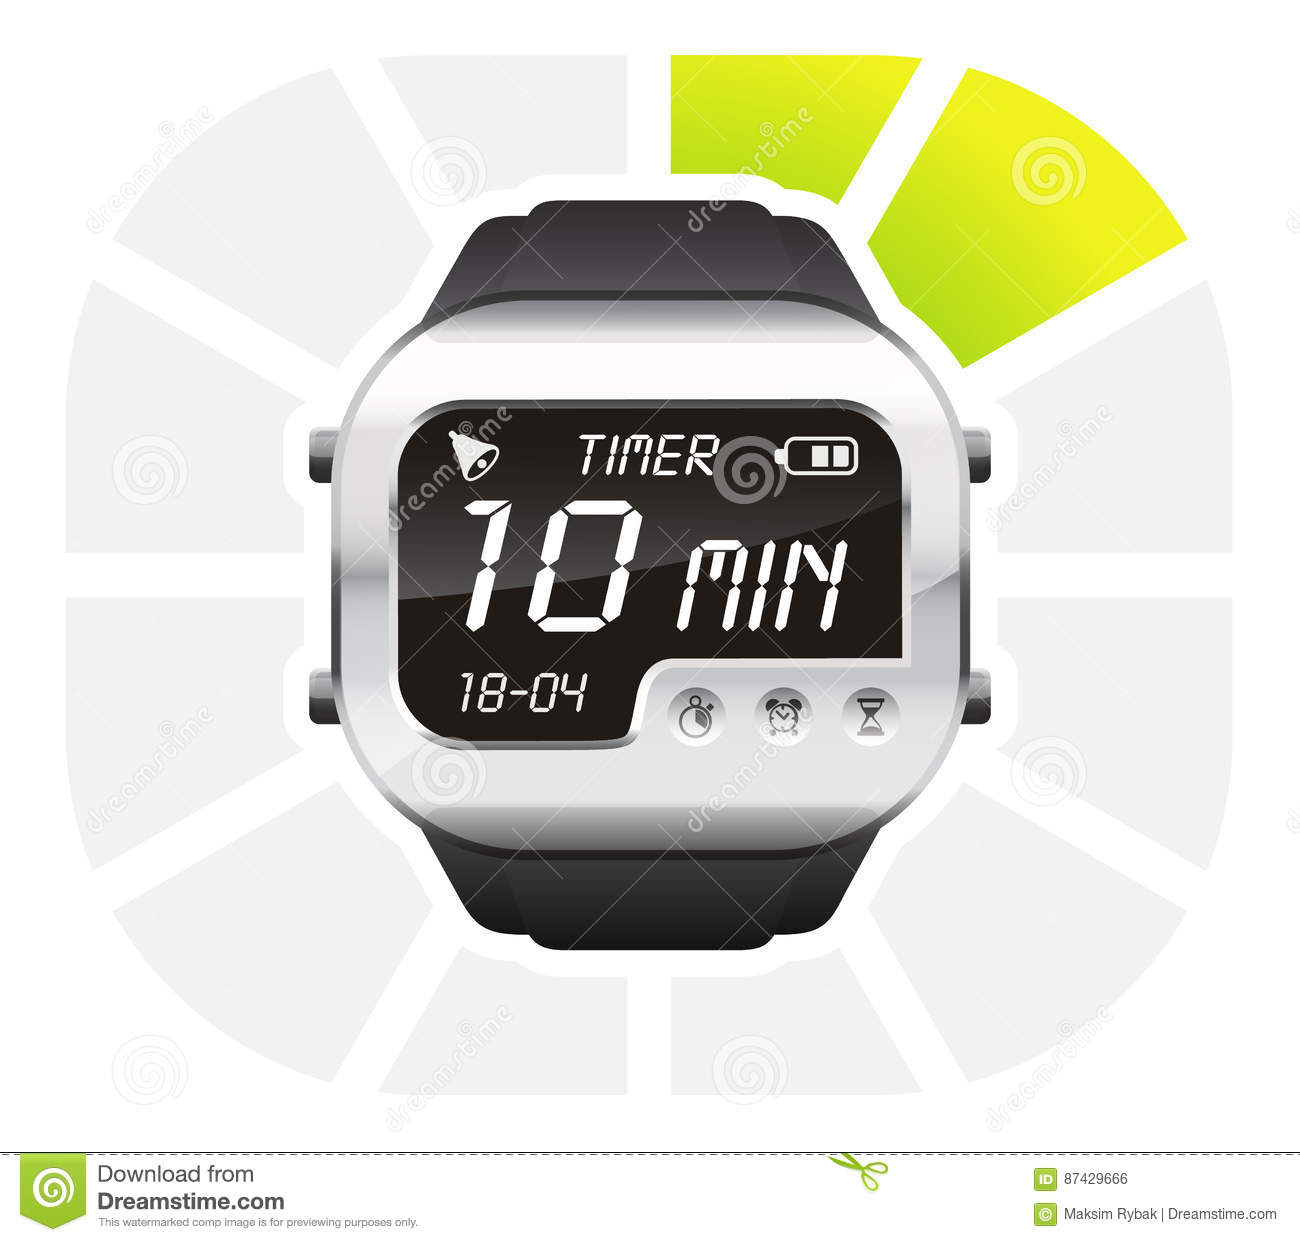 download digital watch timer 10 minutes stock vector illustration of clock interface 87429666